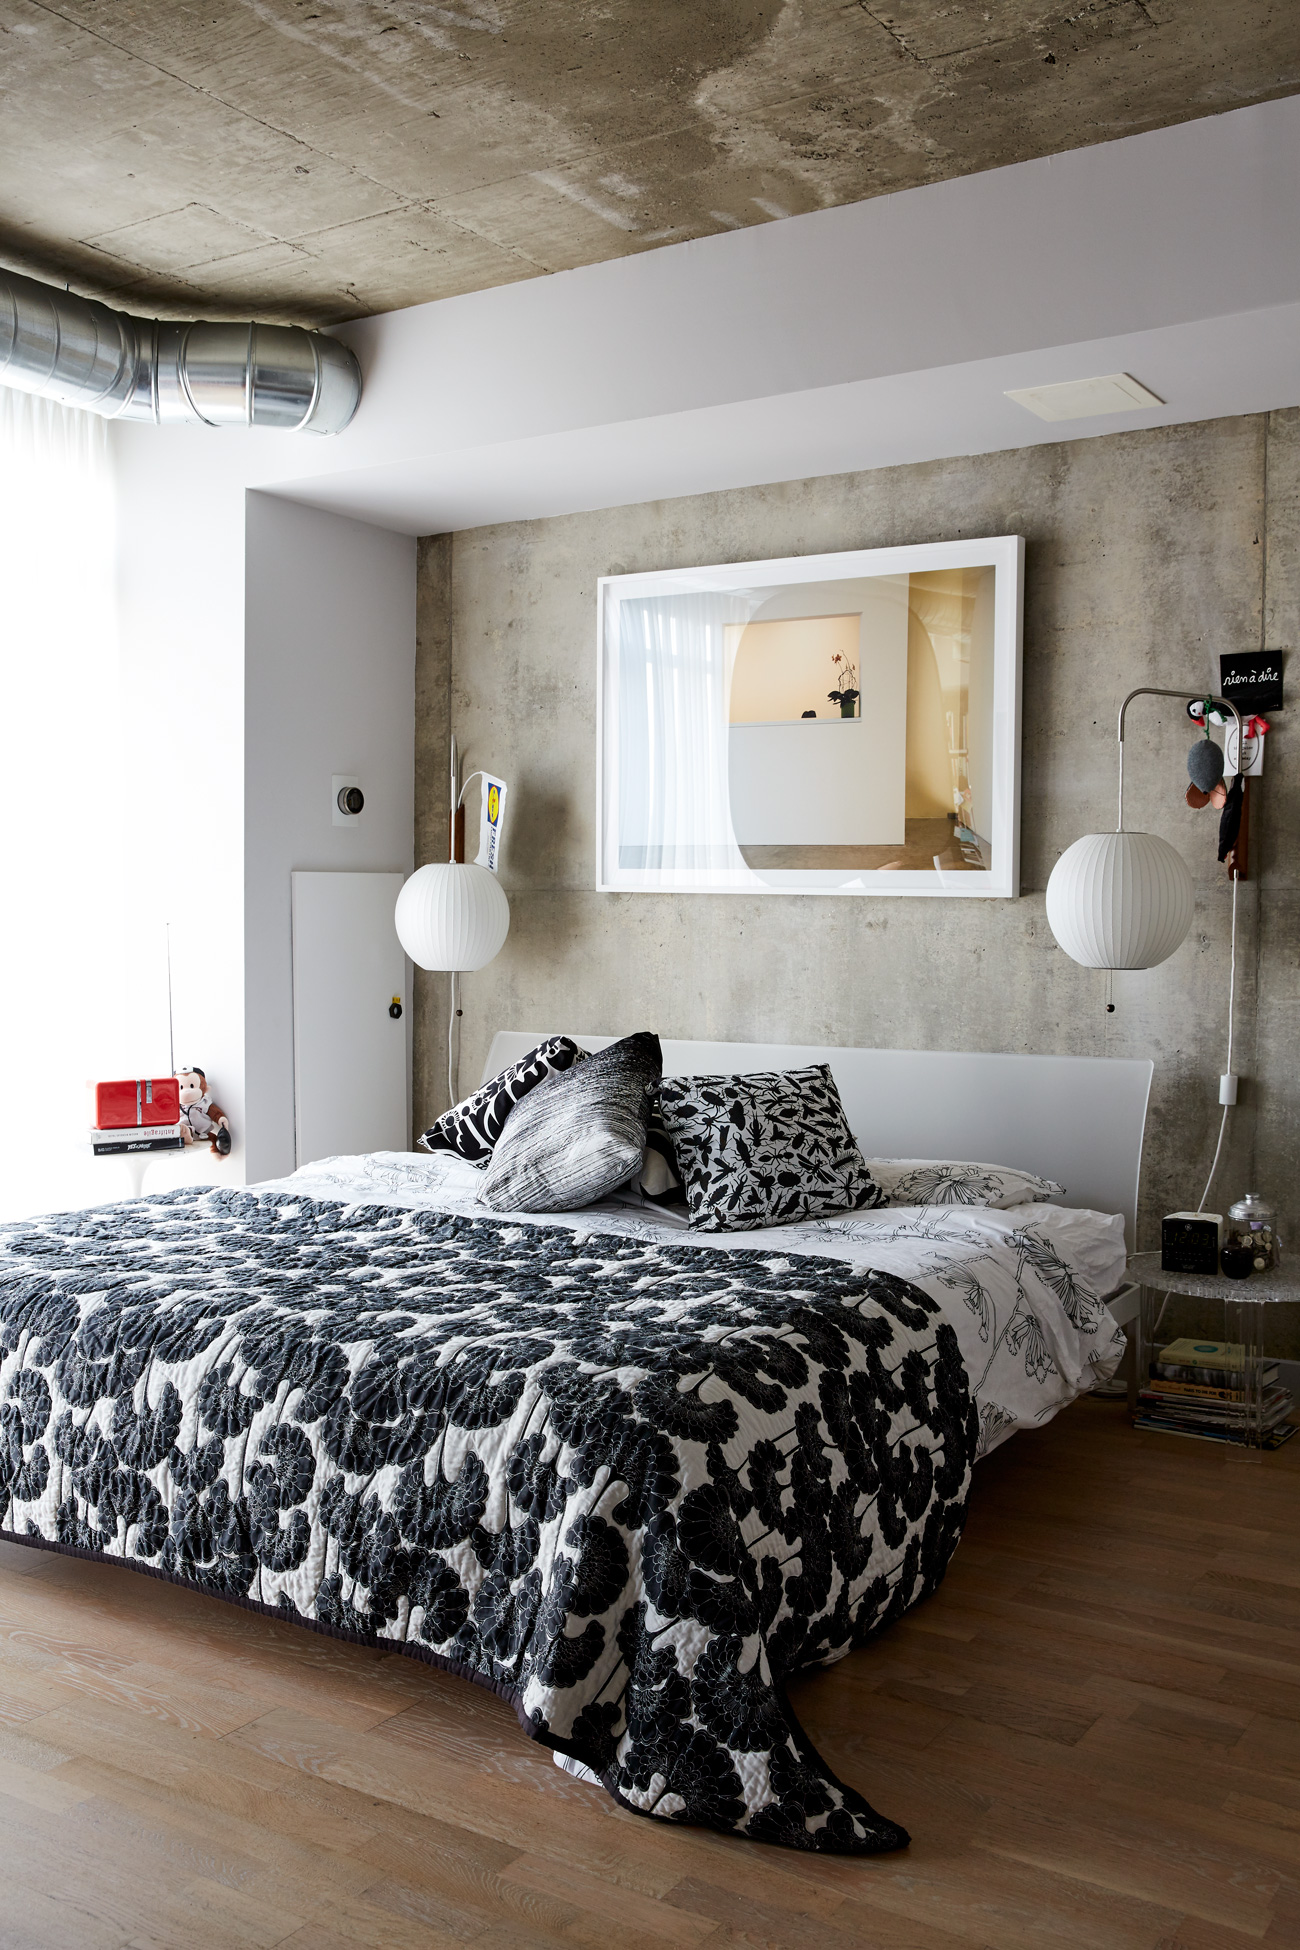 Also on the first floor, George Nelson sconces are installed on either side of the master bed, amped up by a bold Kate Spade coverlet.